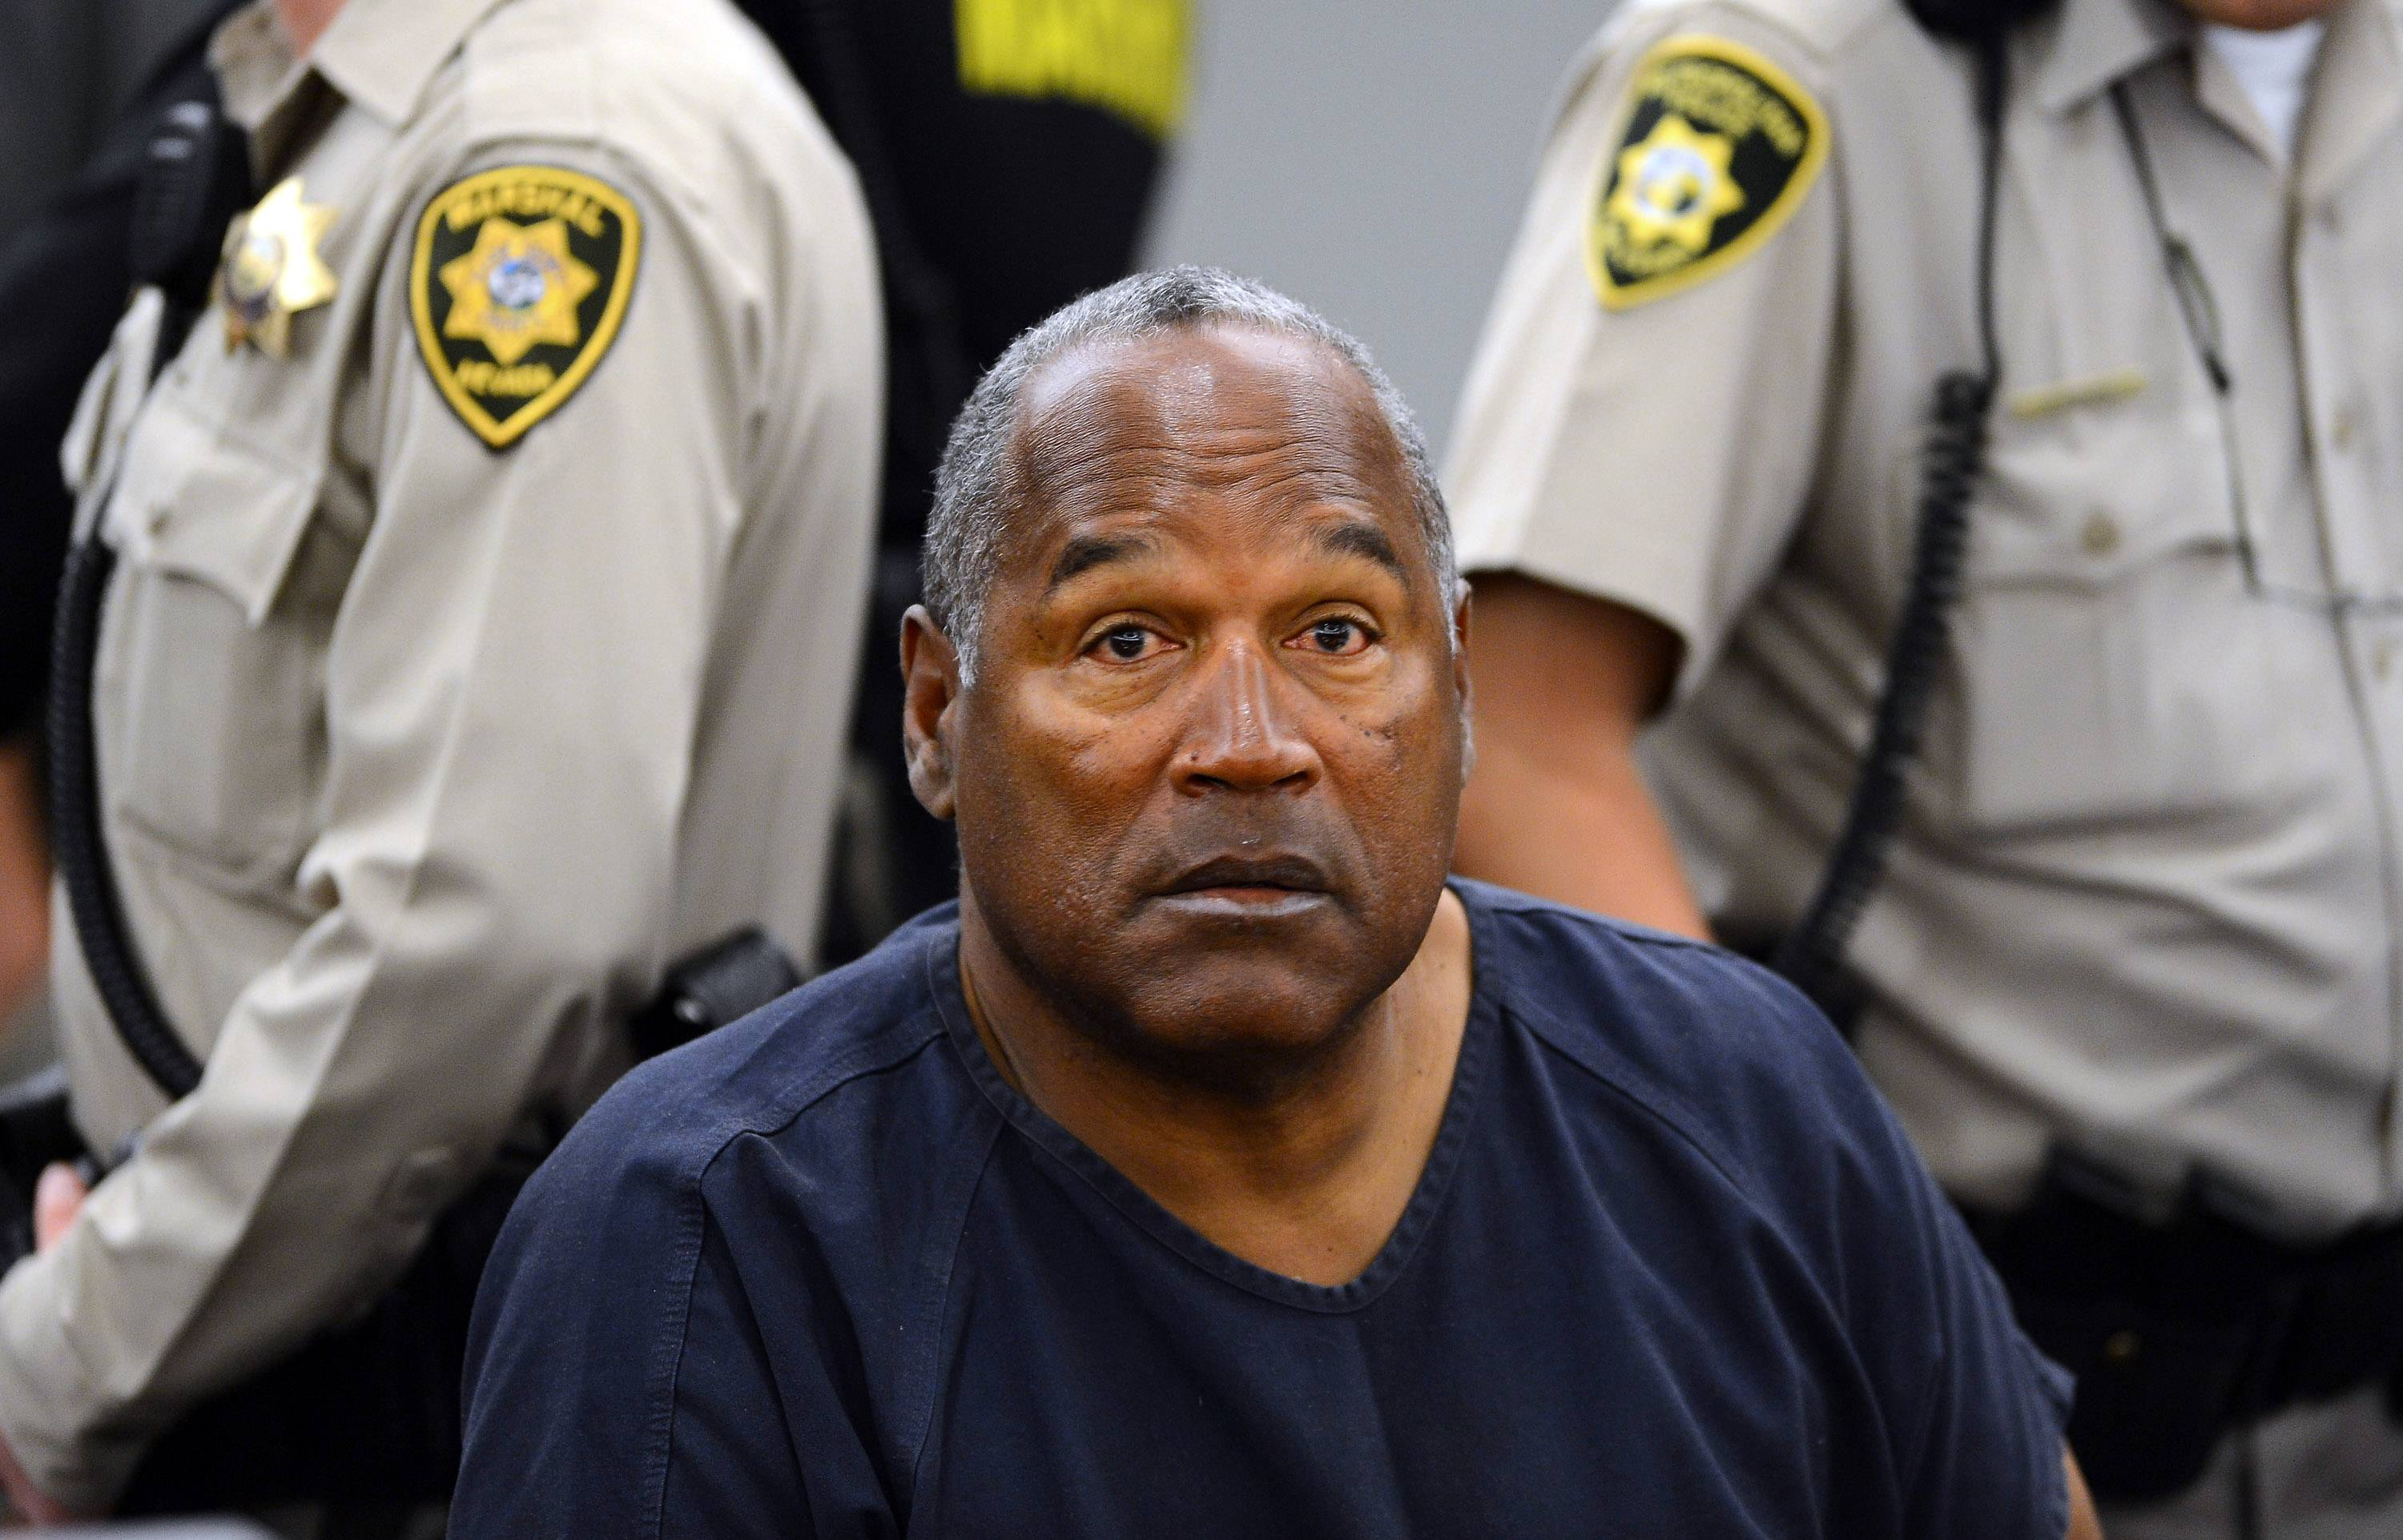 In this May 14, 2013 file photo, O.J. Simpson sits during a break on the second day of an evidentiary hearing in Clark County District Court in Las Vegas. Simpson is serving nine to 33 years in prison for his 2008 conviction in the armed robbery of two sports memorabilia dealers in a Las Vegas hotel room.